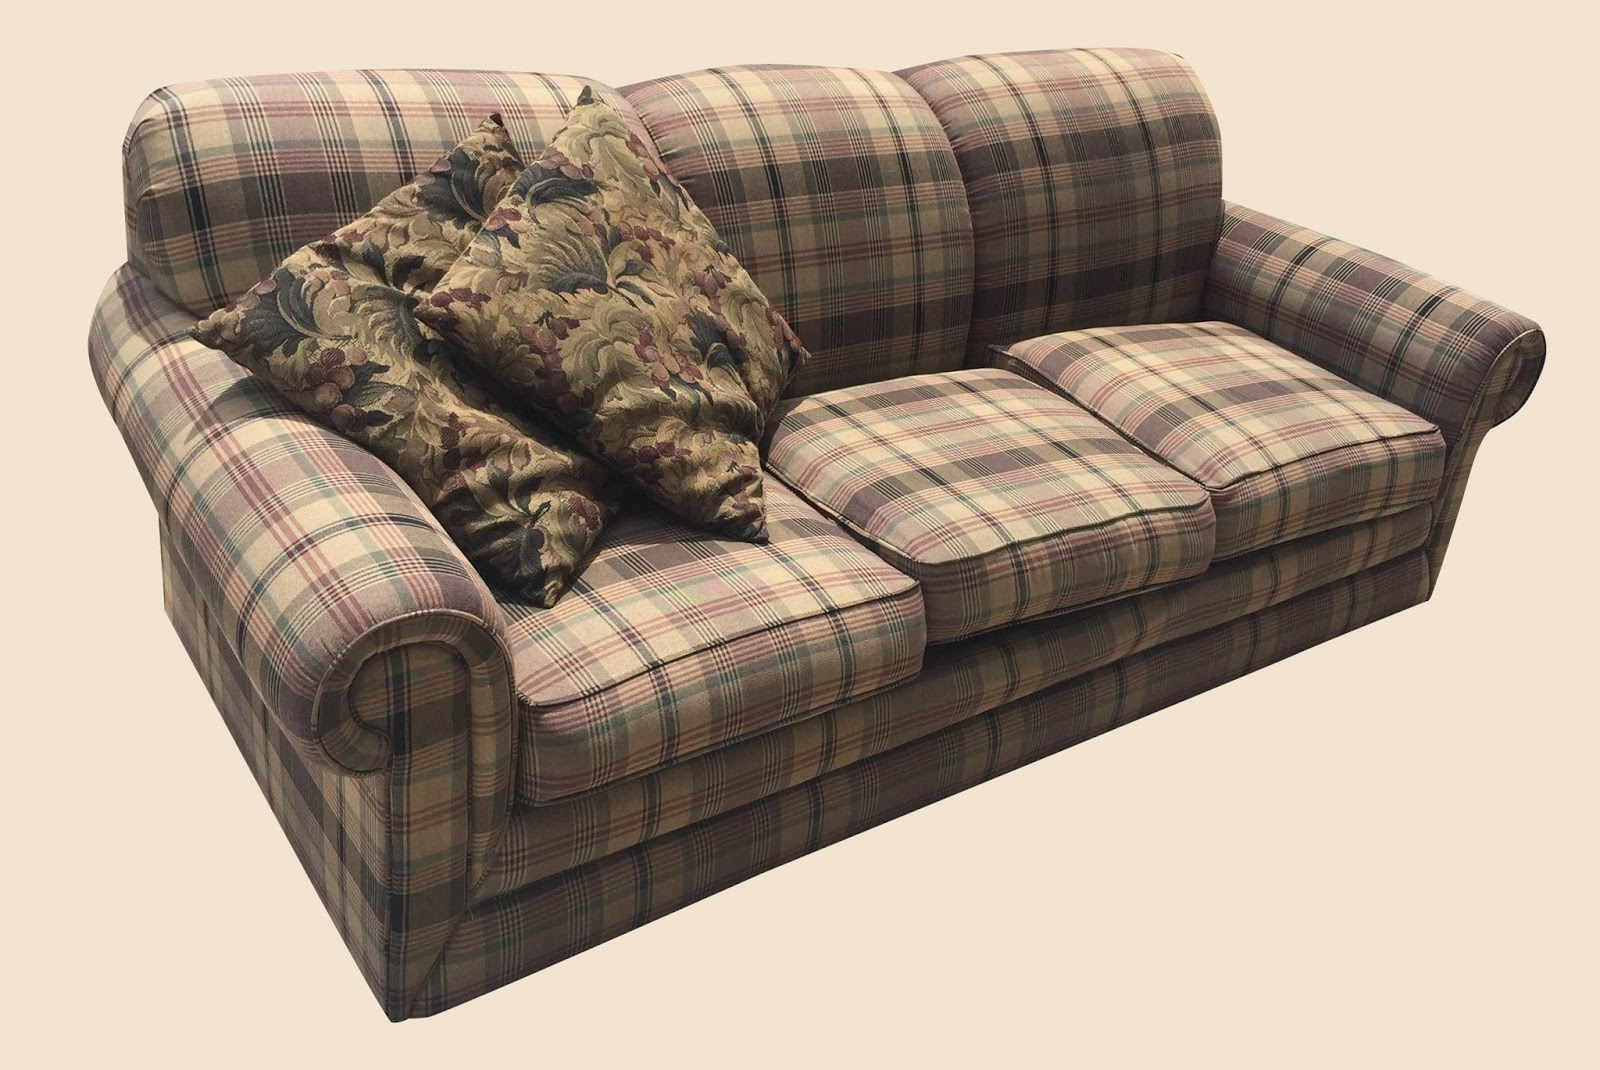 Uhuru Furniture & Collectibles: Brown Plaid Sofa - $125 SOLD